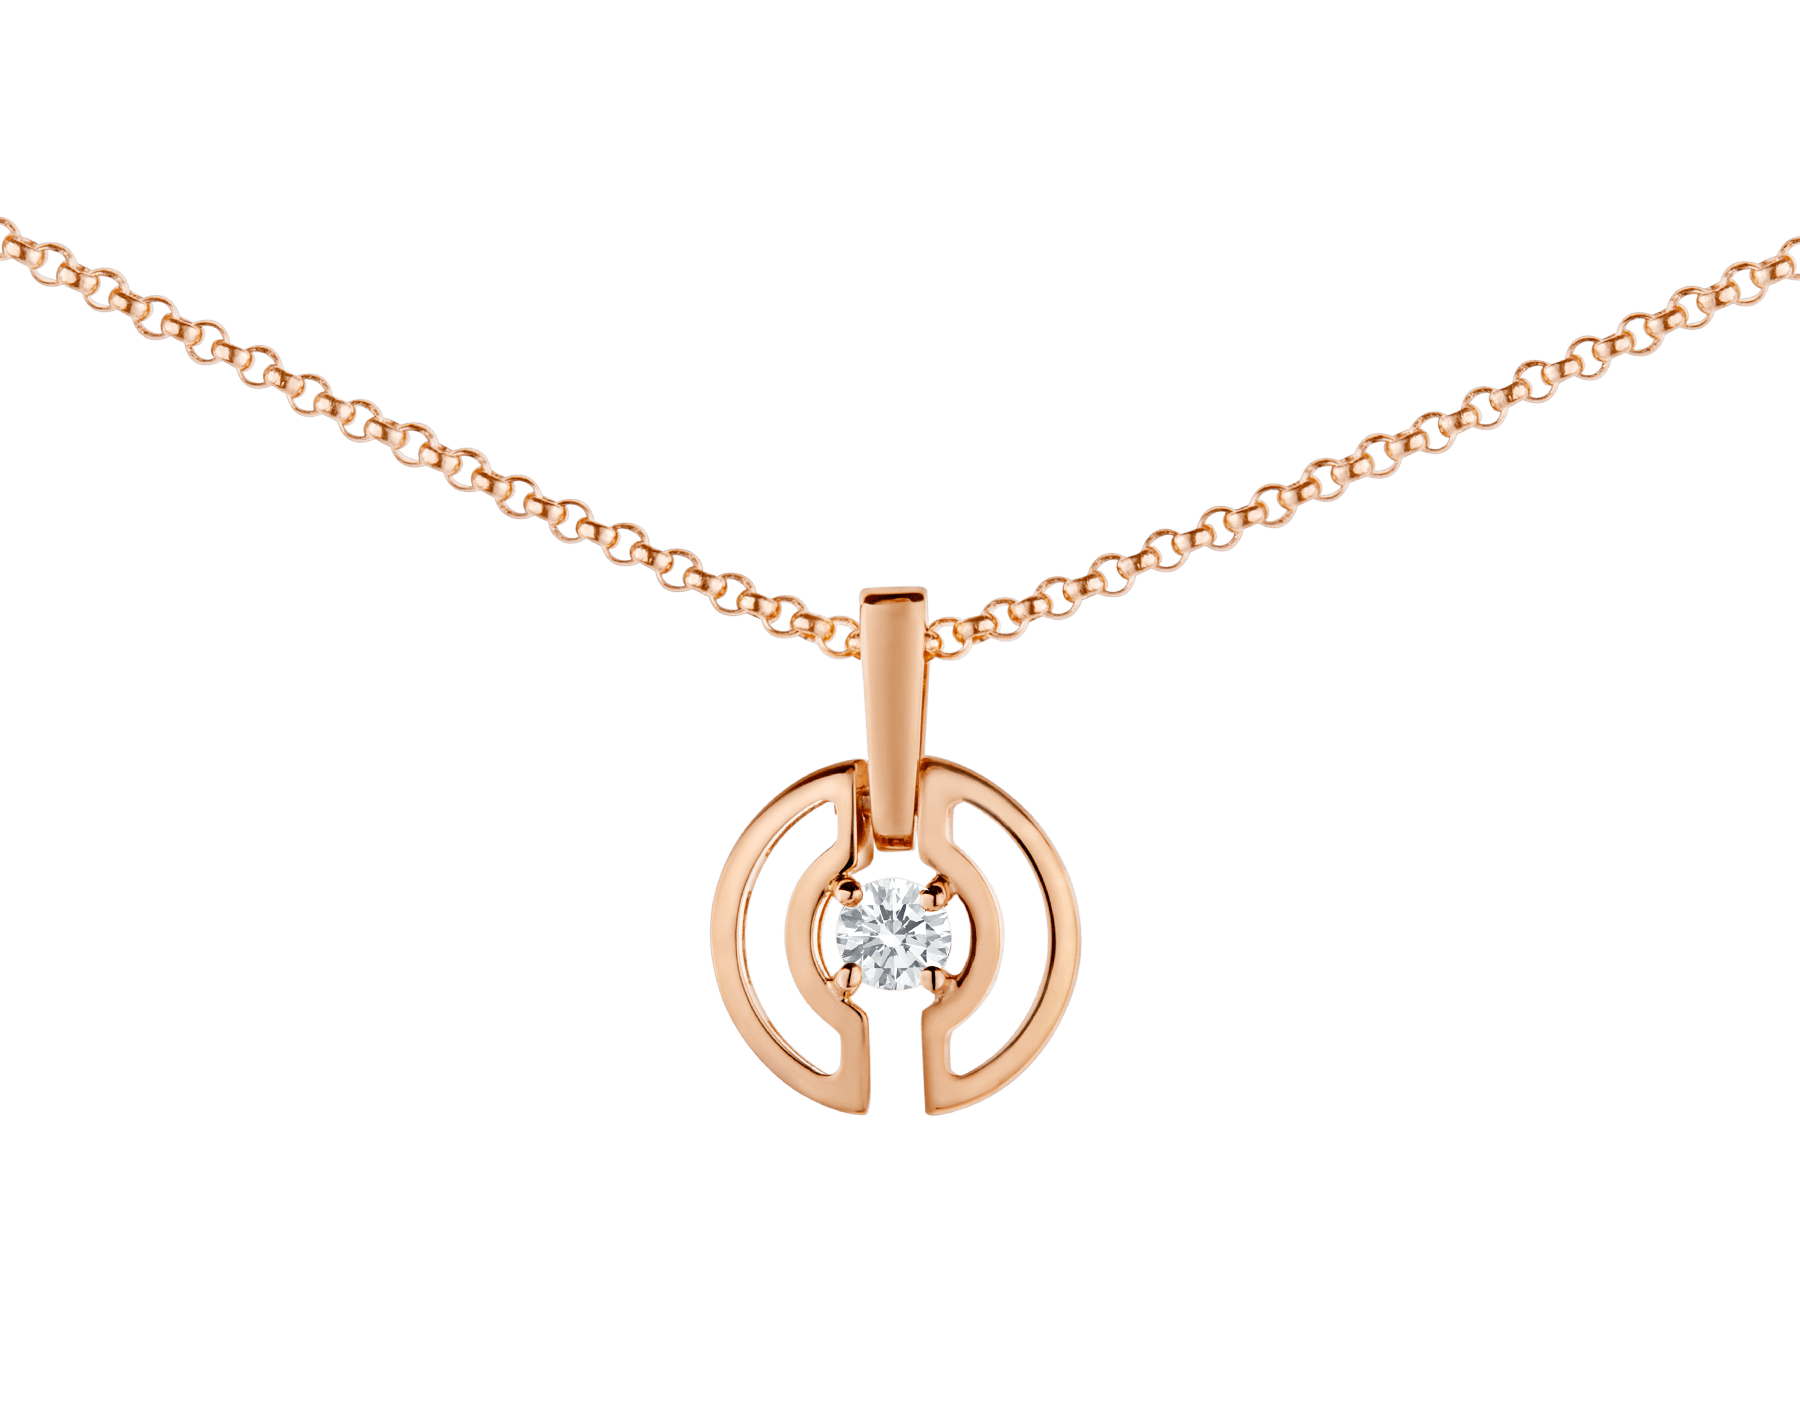 Parentesi necklace with 18 kt rose gold chain and pendant, set with a central diamond. 354605 image 2